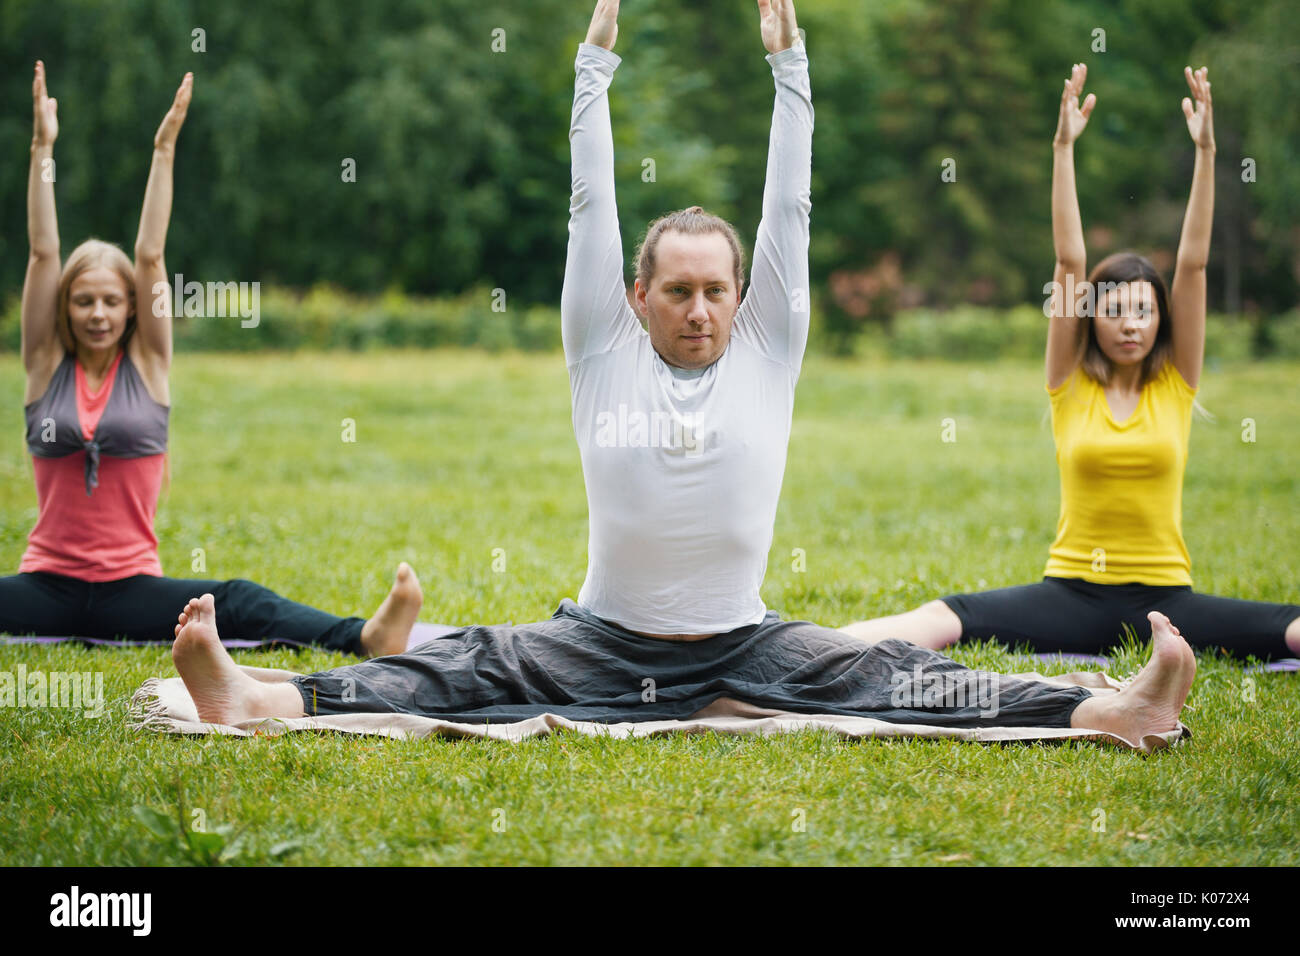 Yoga instructor shows flexibility exercise for group of girls in park - Stock Image